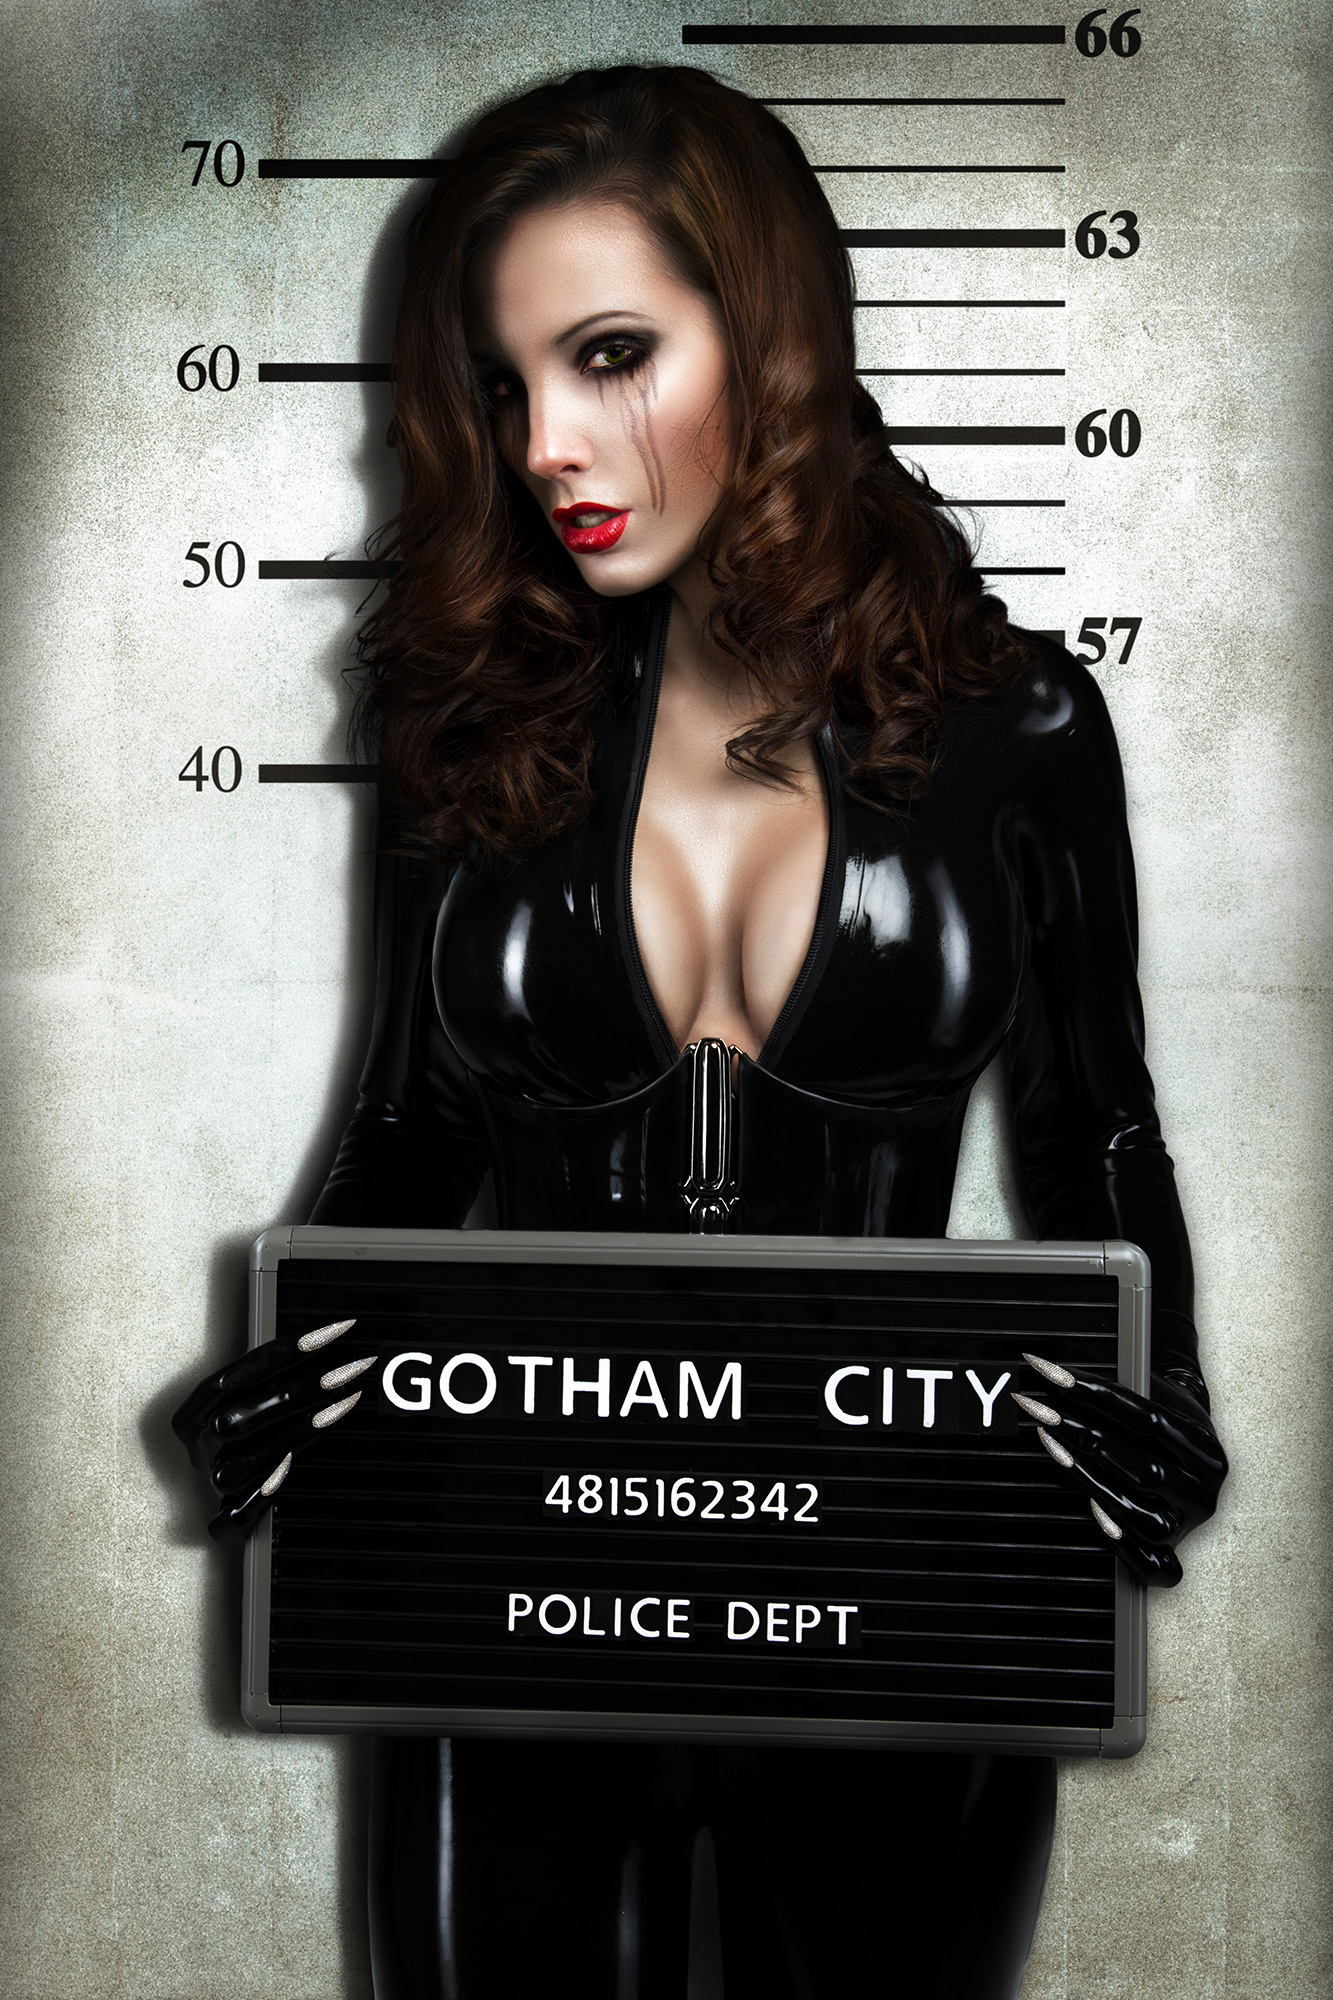 Catwoman arrested in latex catsuit mugshot